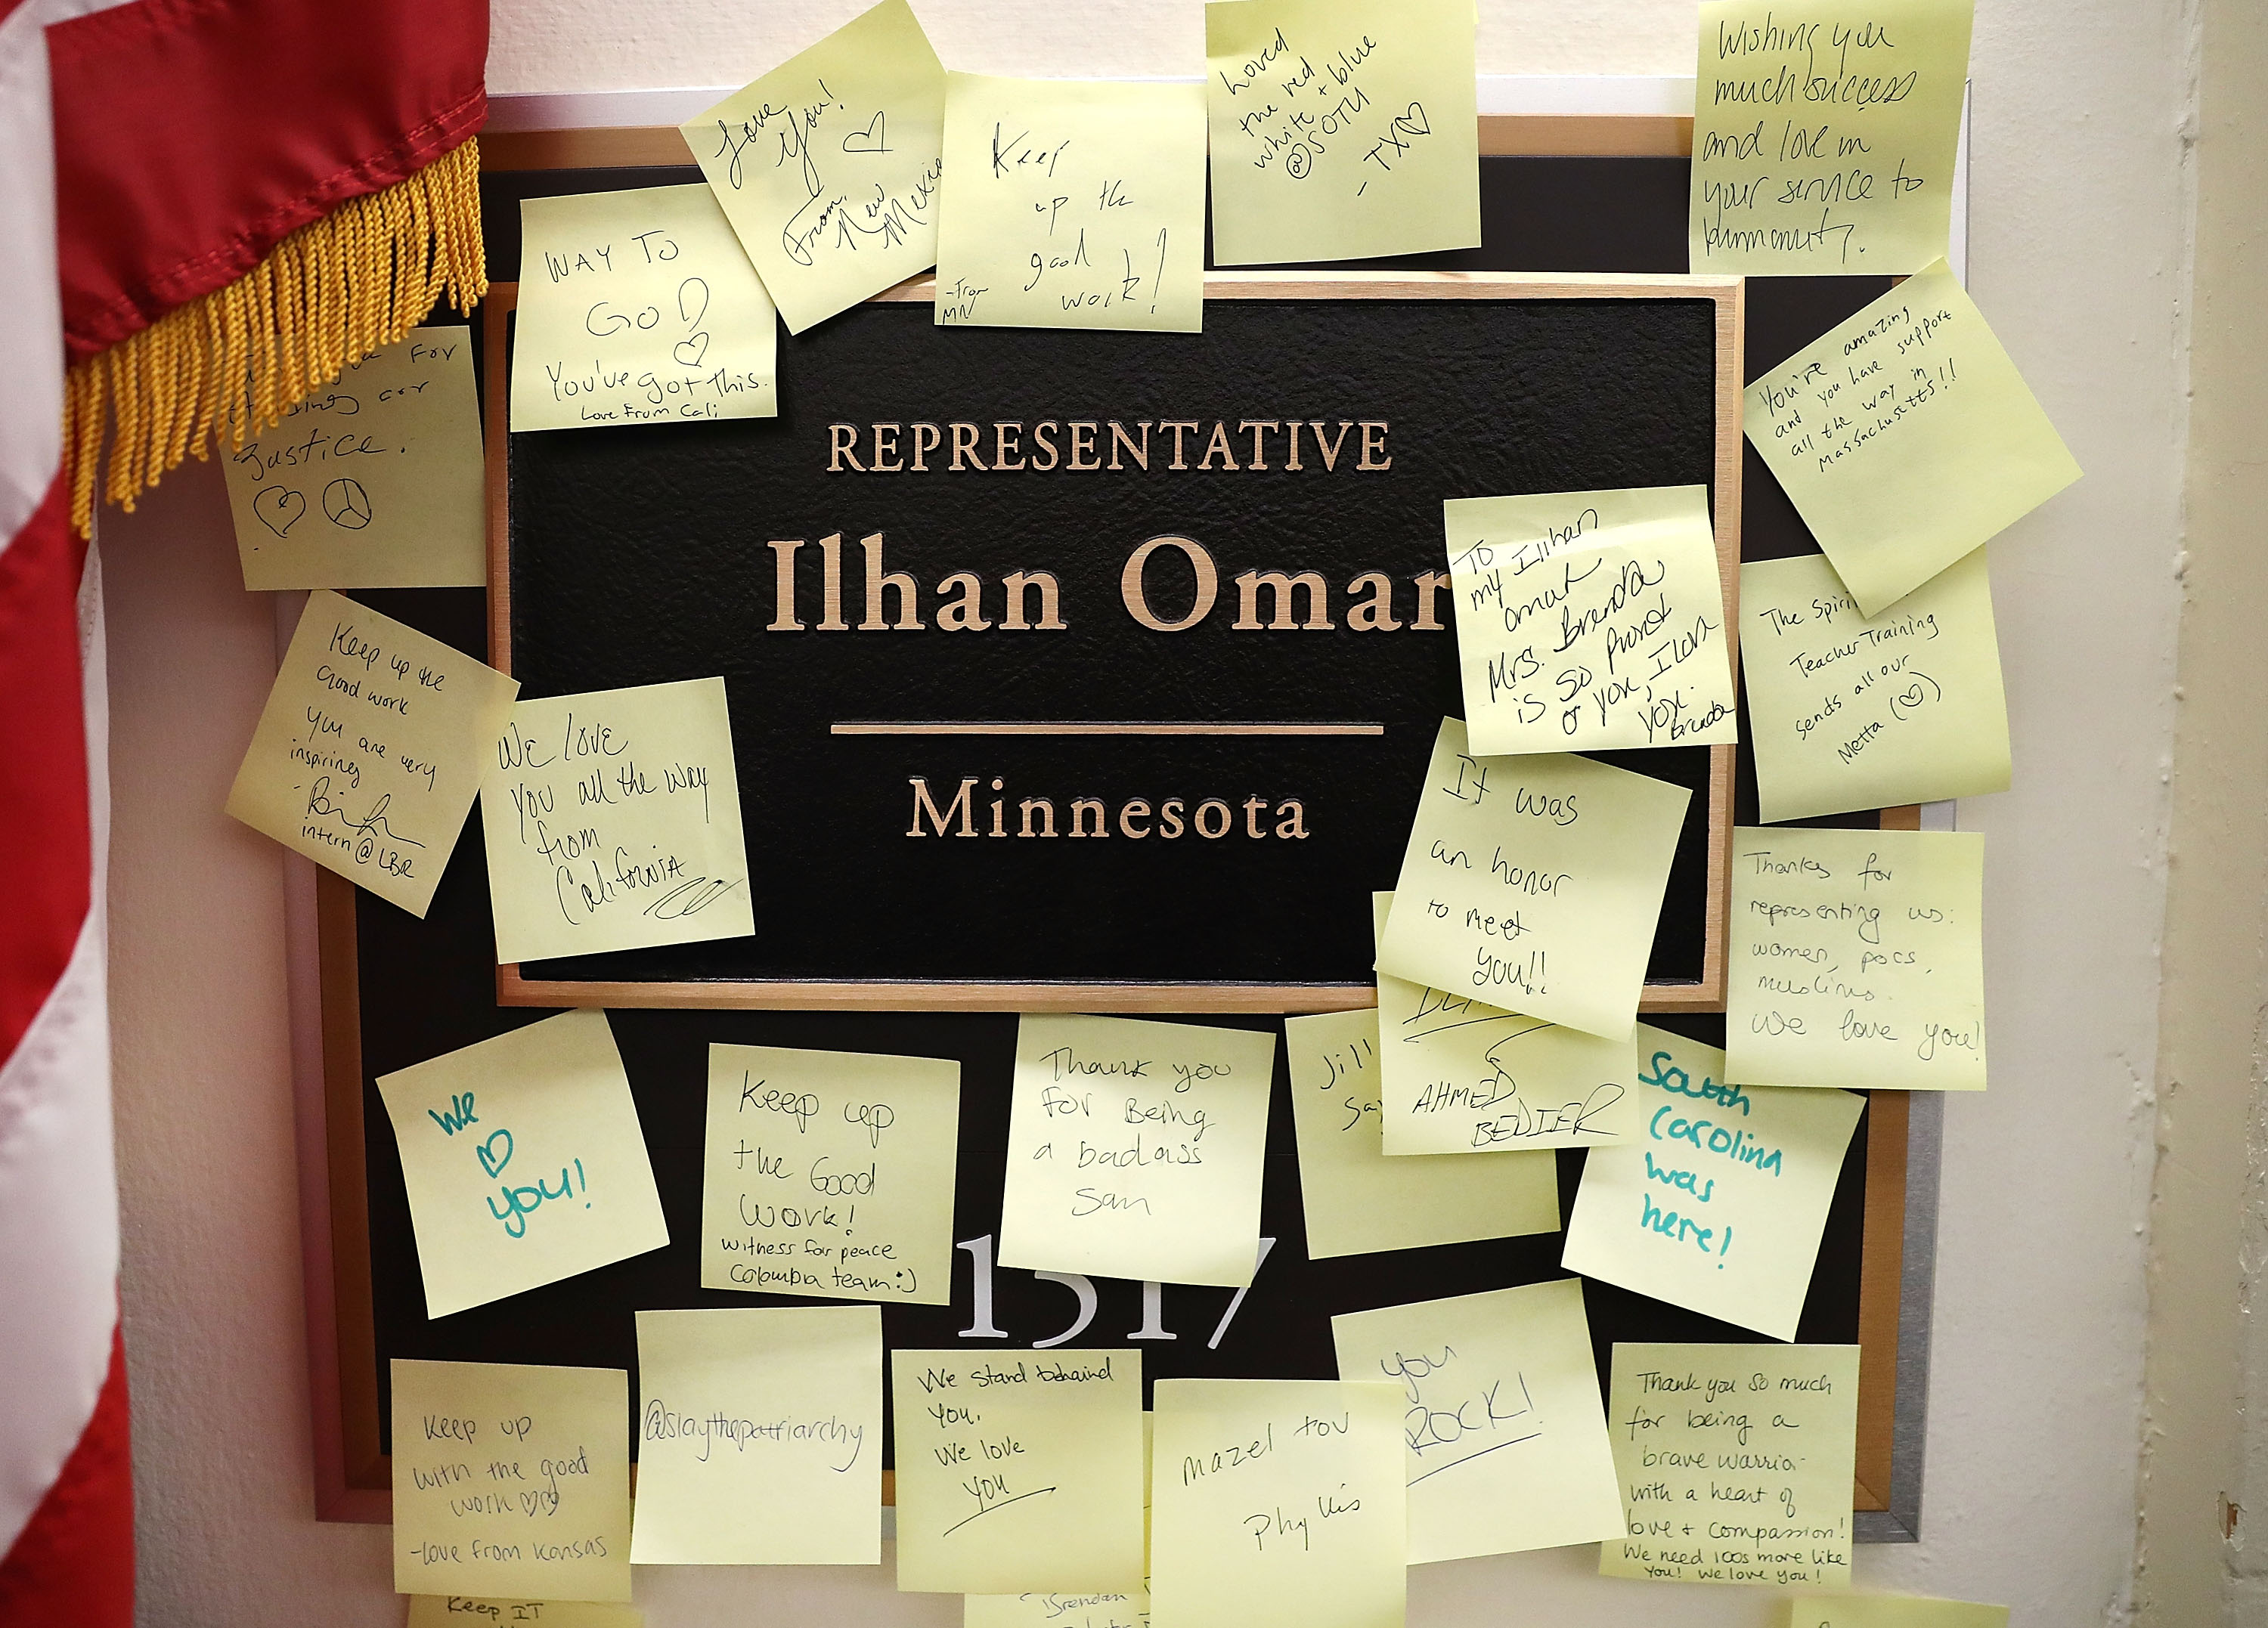 Notes of support are posted on the name plate outside the office of Rep. Ilhan Omar in the Longworth House Office Building on February 11, 2019 in Washington, DC. (Photo by Mark Wilson/Getty Images)